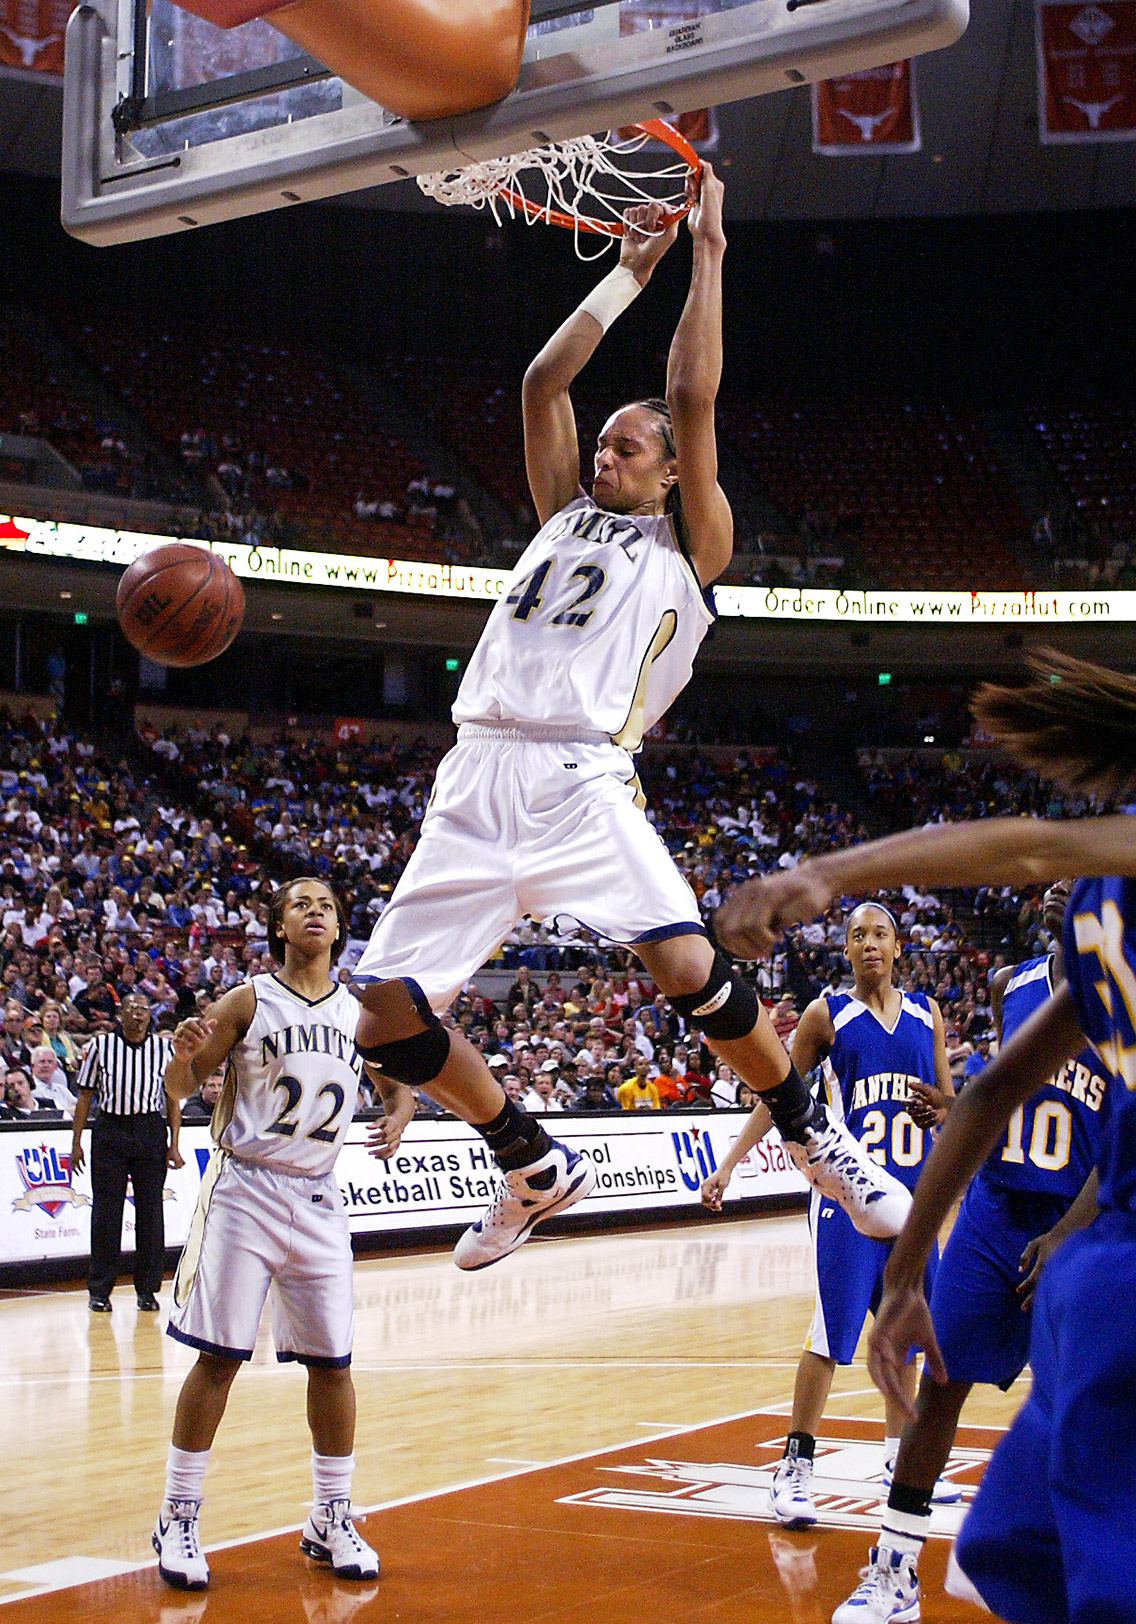 Even in high school, Brittney Griner rose above the competition and was a frequent dunker at Nimitz High School in Houston.